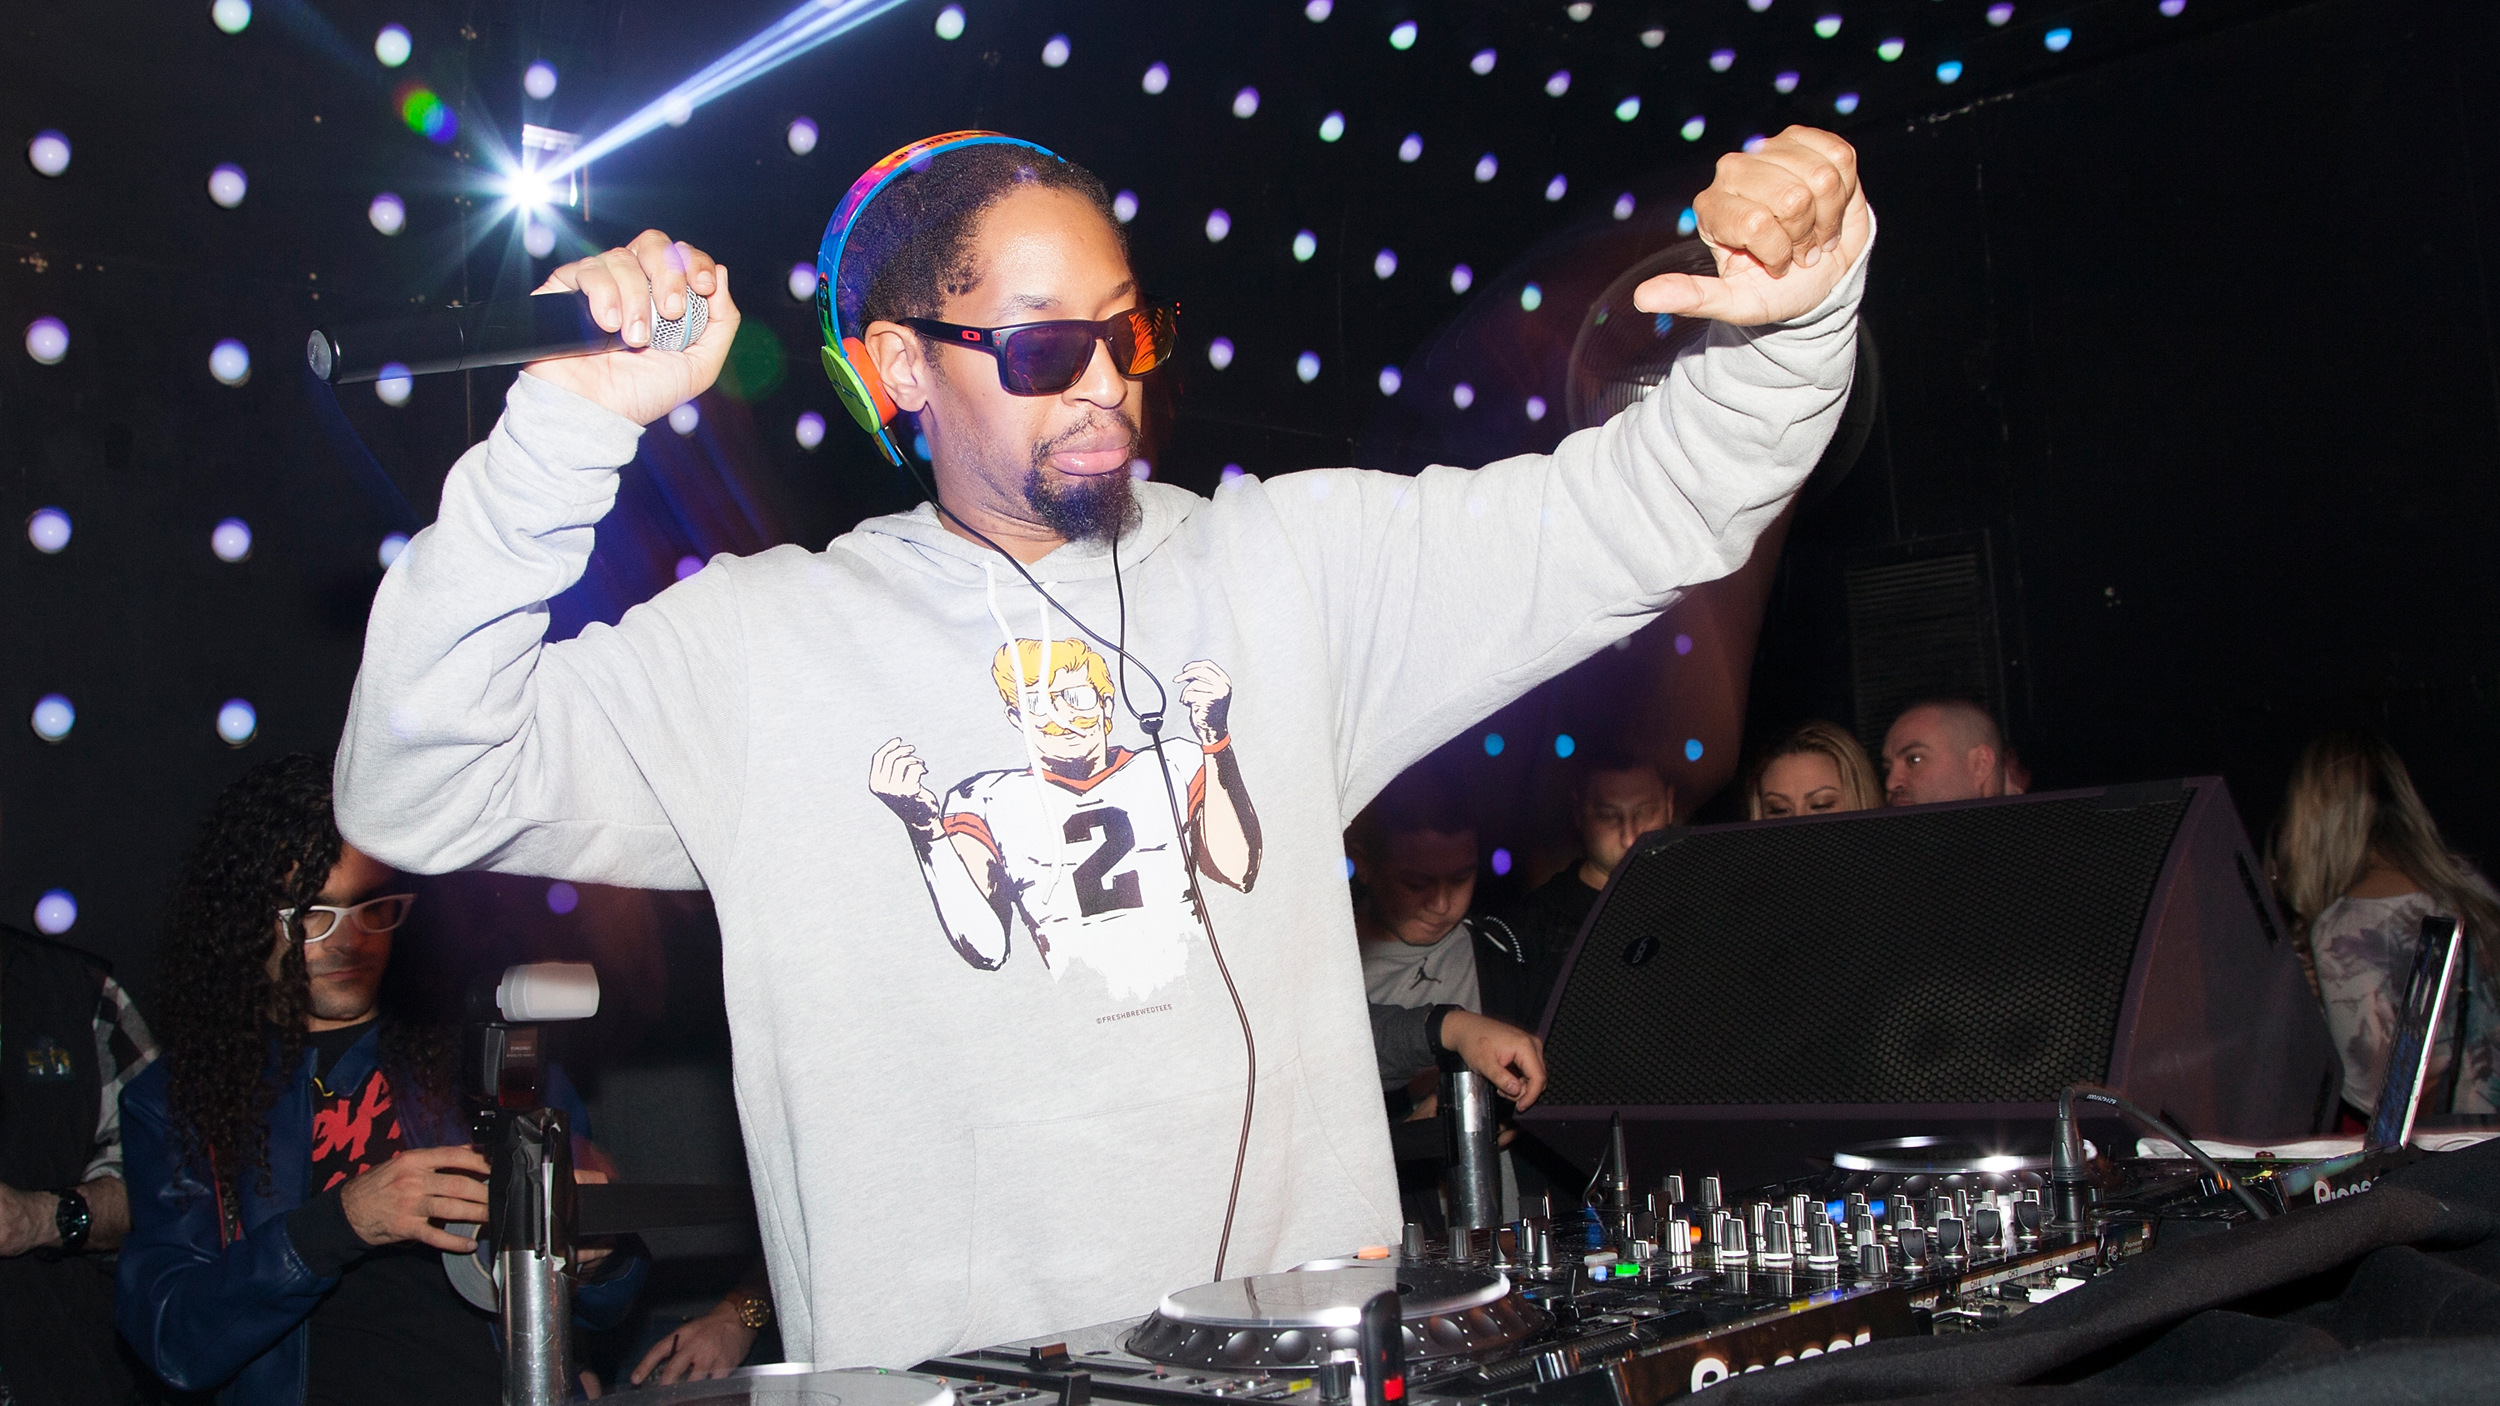 Lil Jon performs a DJ set at Temple Nightclub on February 7, 2016 in San Francisco, California.